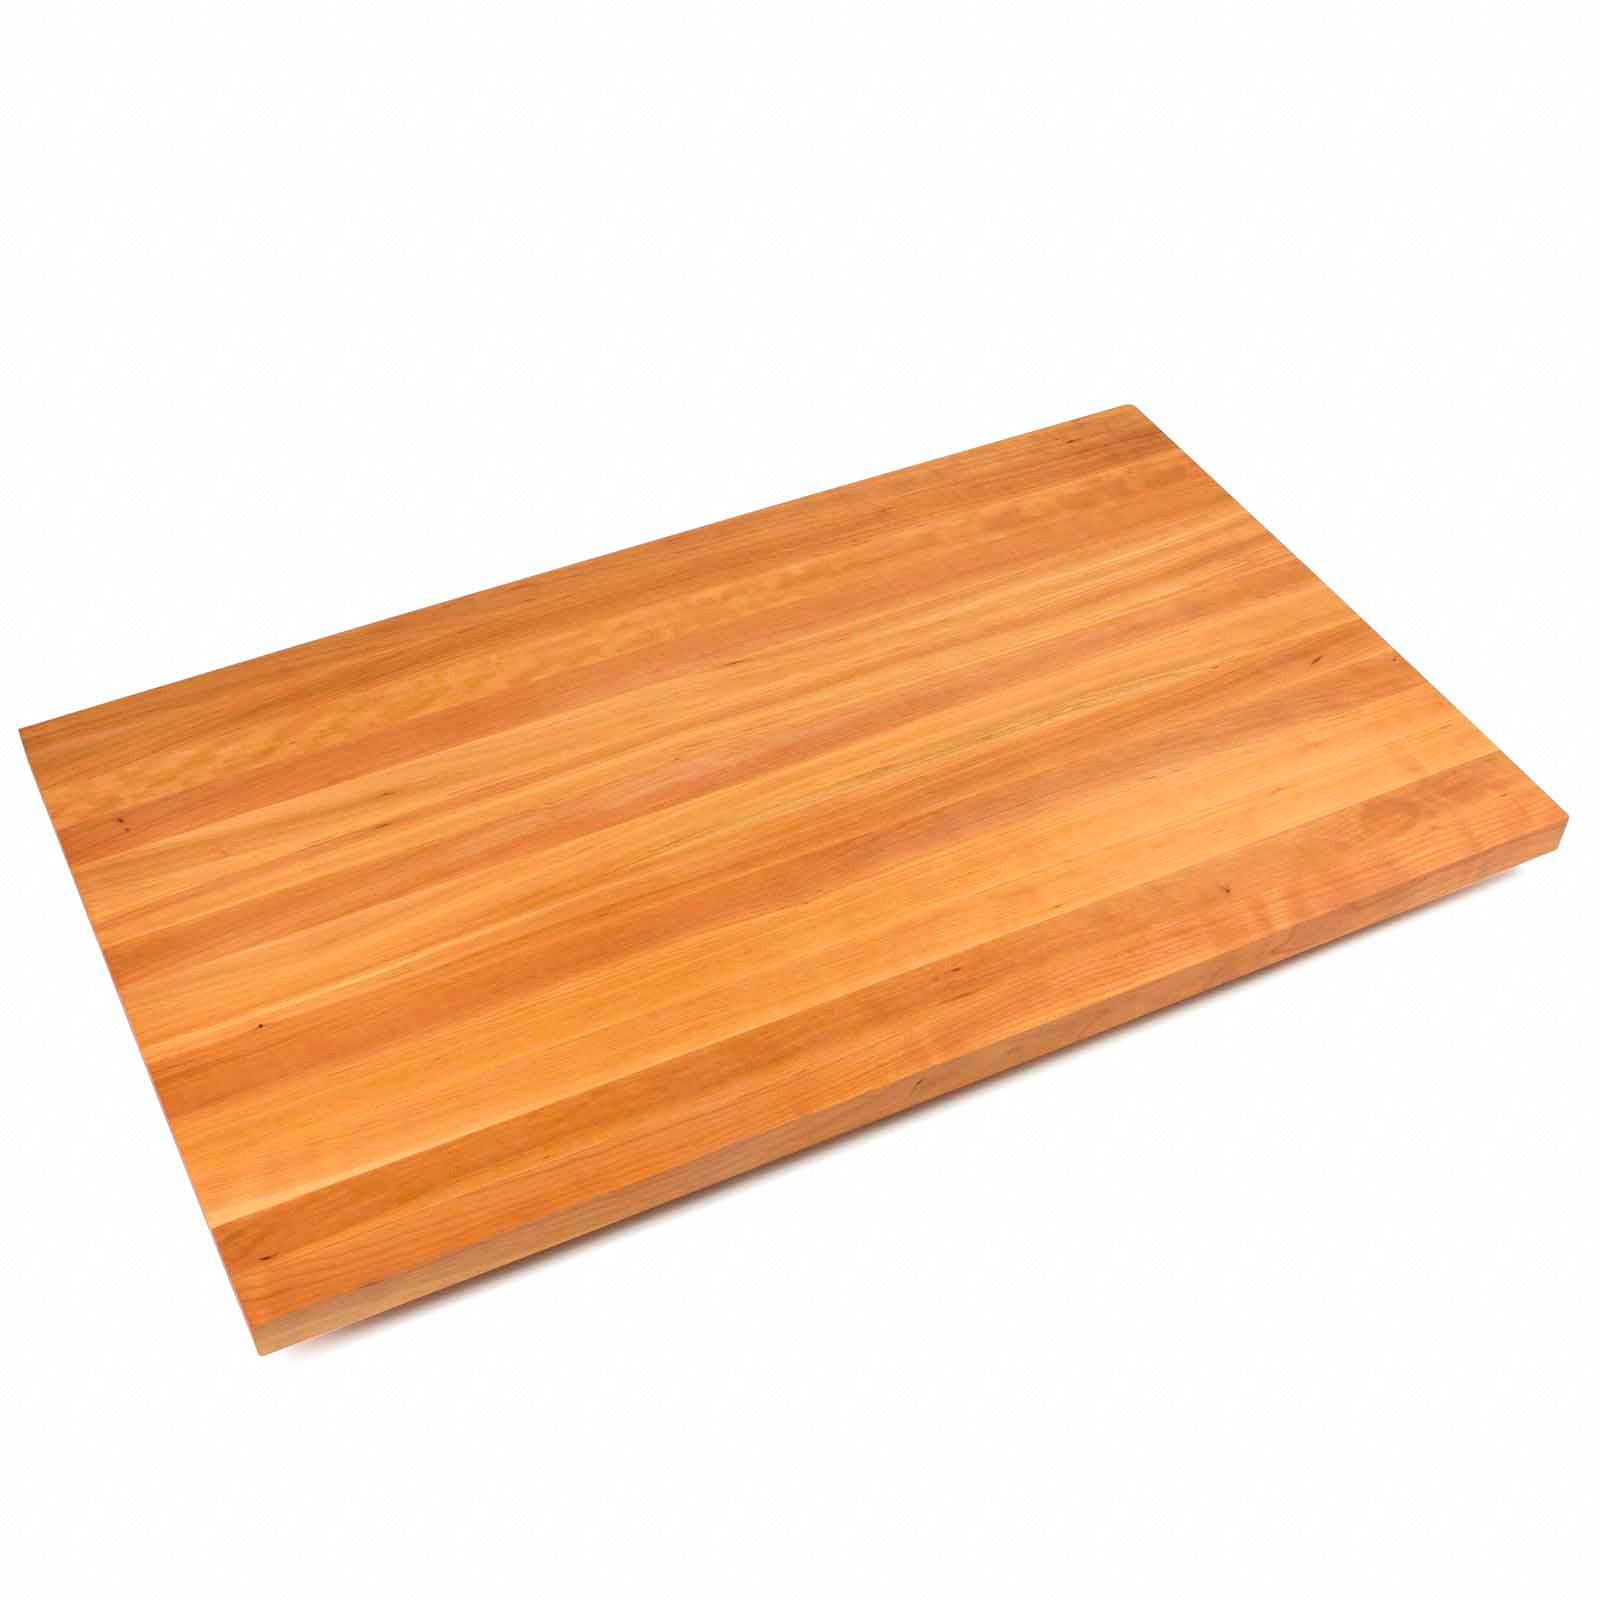 "John Boos 1 1/2"" Thick Edge Grain Cherry Butcher Block Countertop - 38"" Wide"